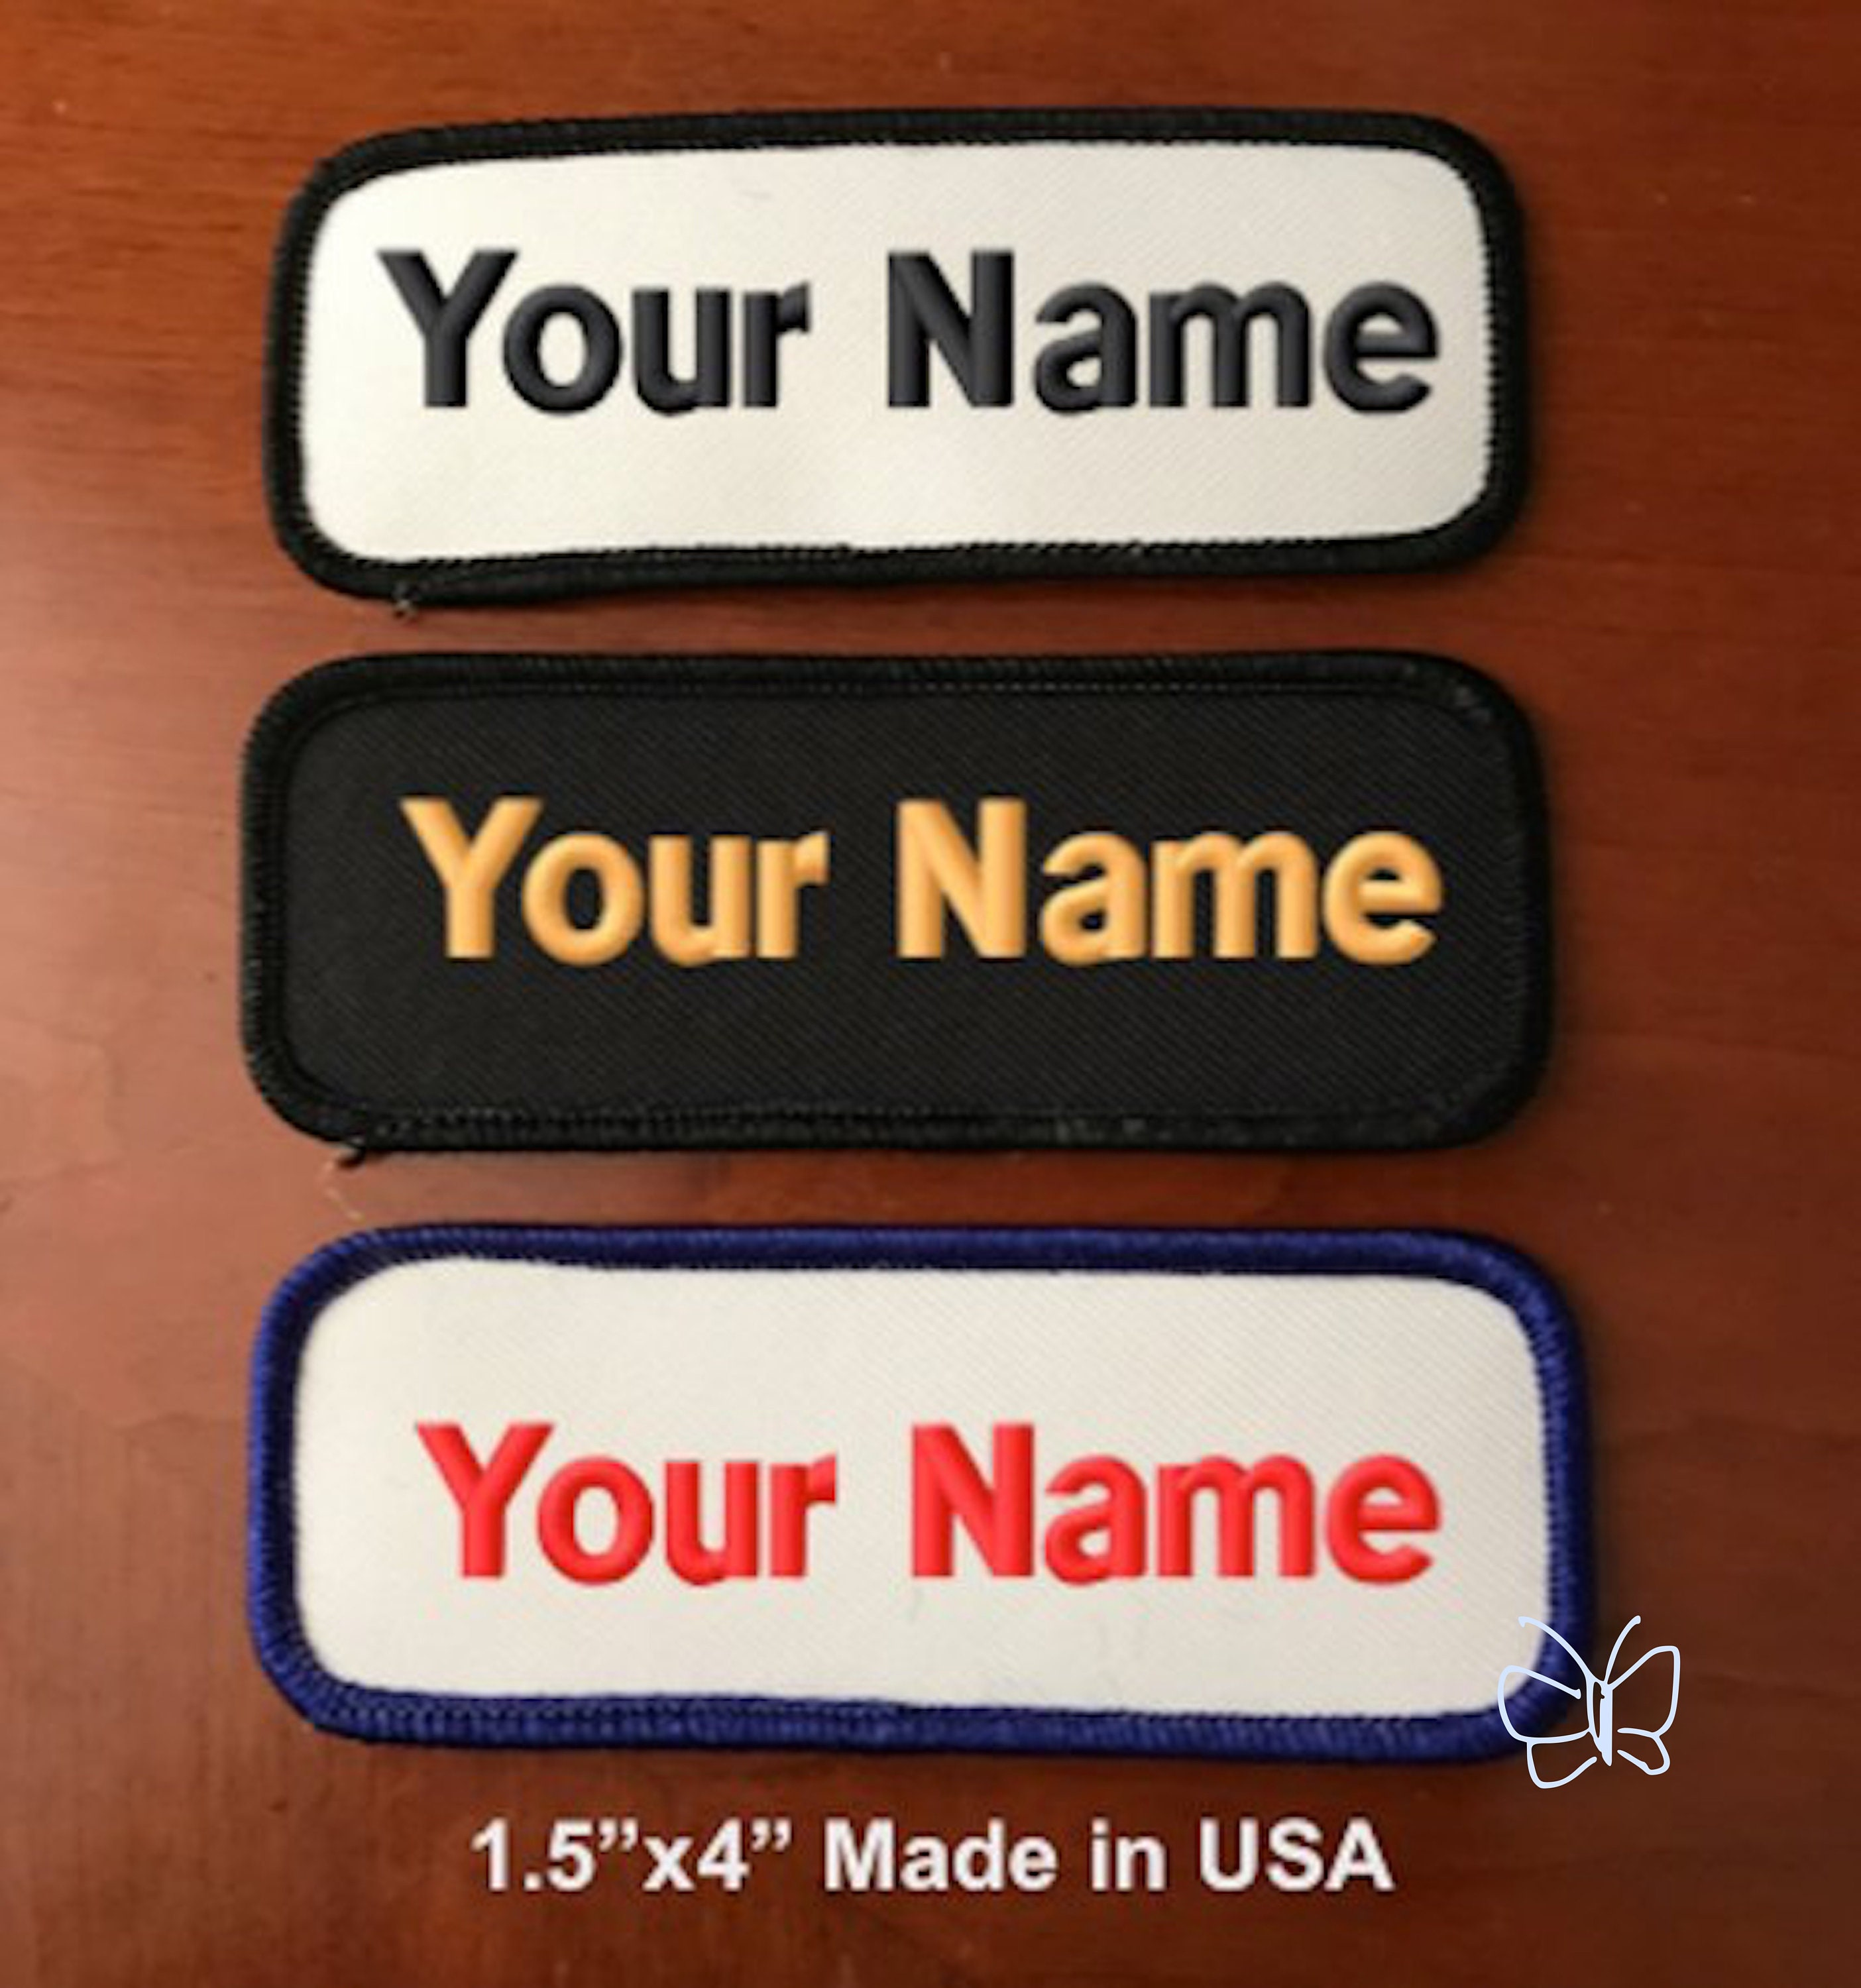 feb17c59a25a Custom Embroidered Patch Personalized Name Tag Motorcycle Biker Badge  1.5